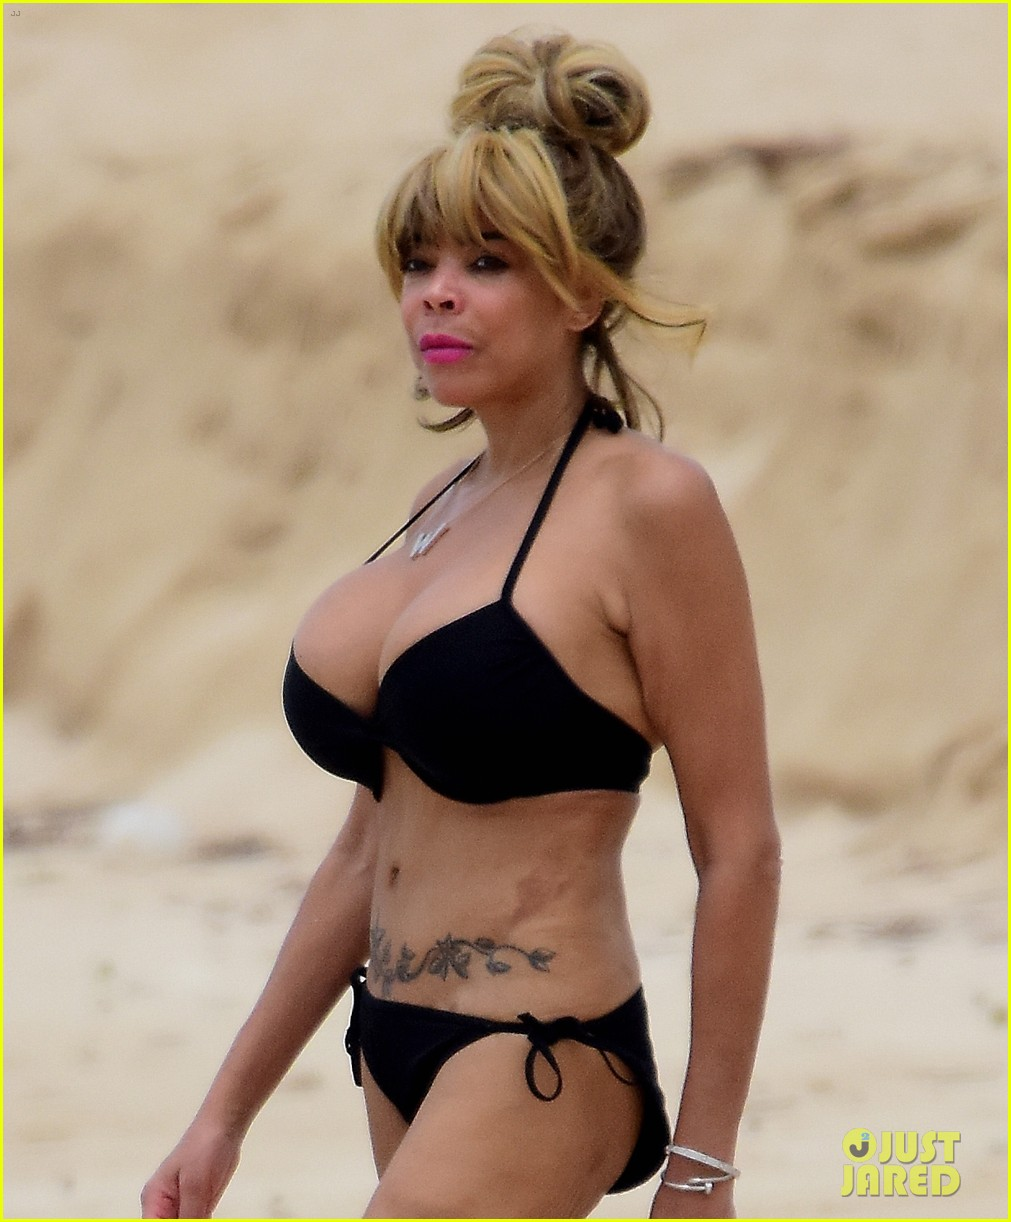 Bikini Wendy Williams naked (69 photos), Topless, Cleavage, Feet, butt 2017